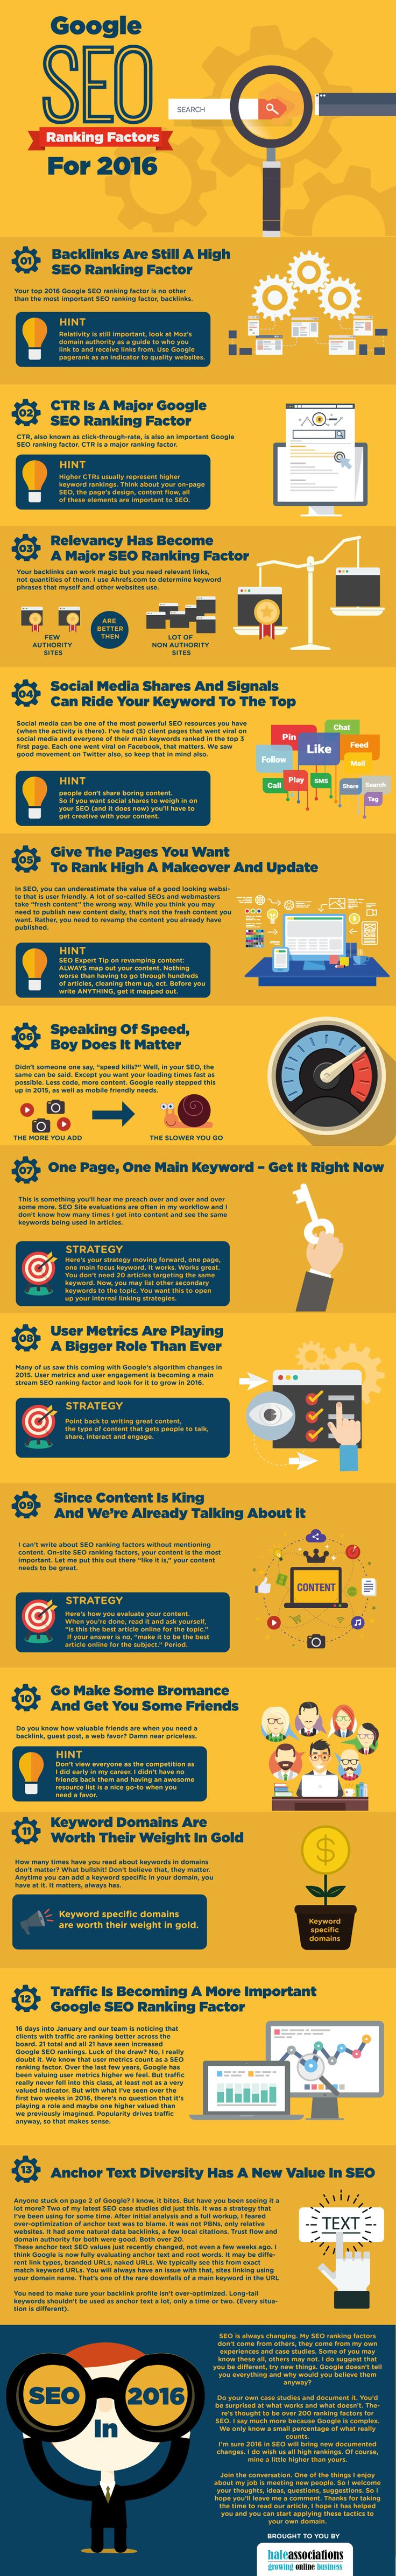 Google SEO Ranking Factors for 2016  #RePin by AT Social Media Marketing - Pinterest Marketing Specialists ATSocialMedia.co.uk